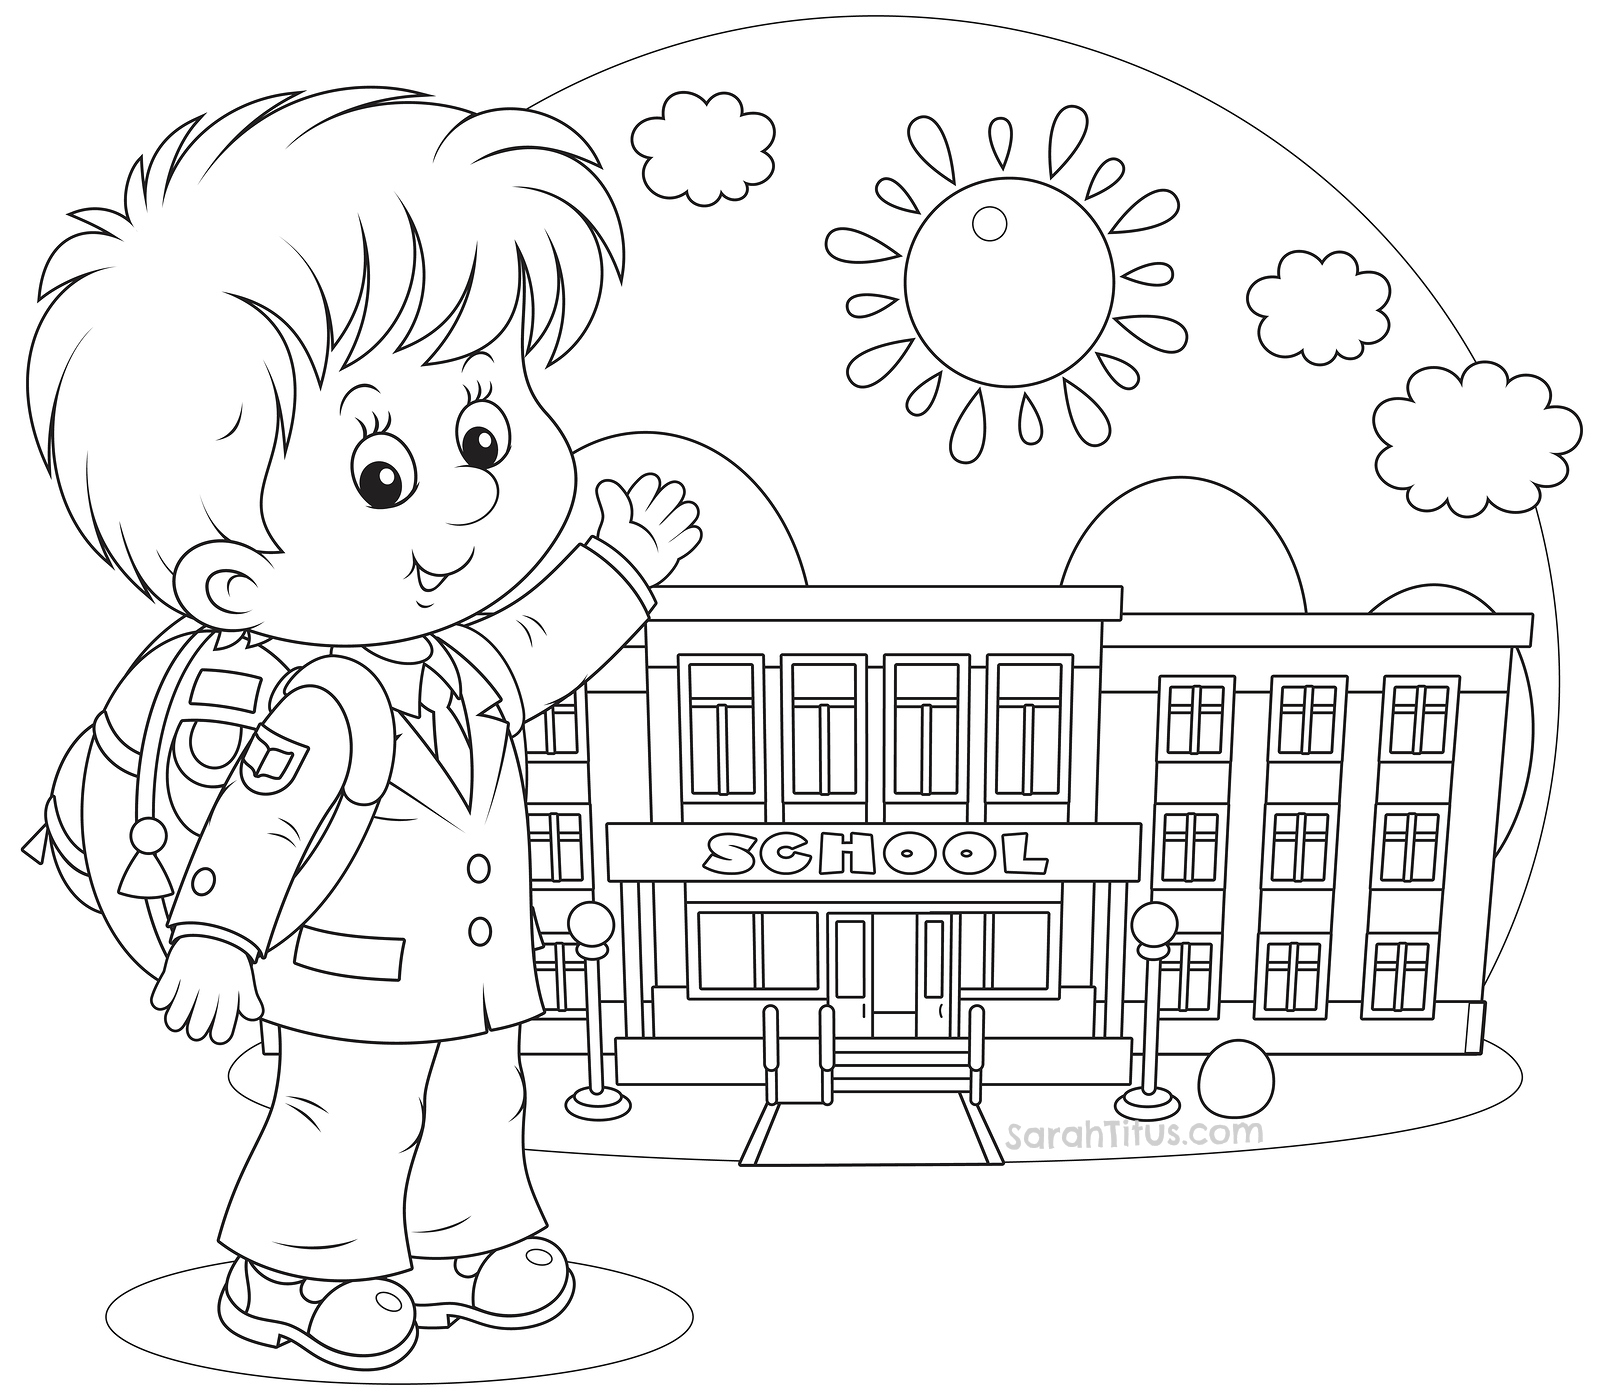 school stuff coloring pages - photo#34